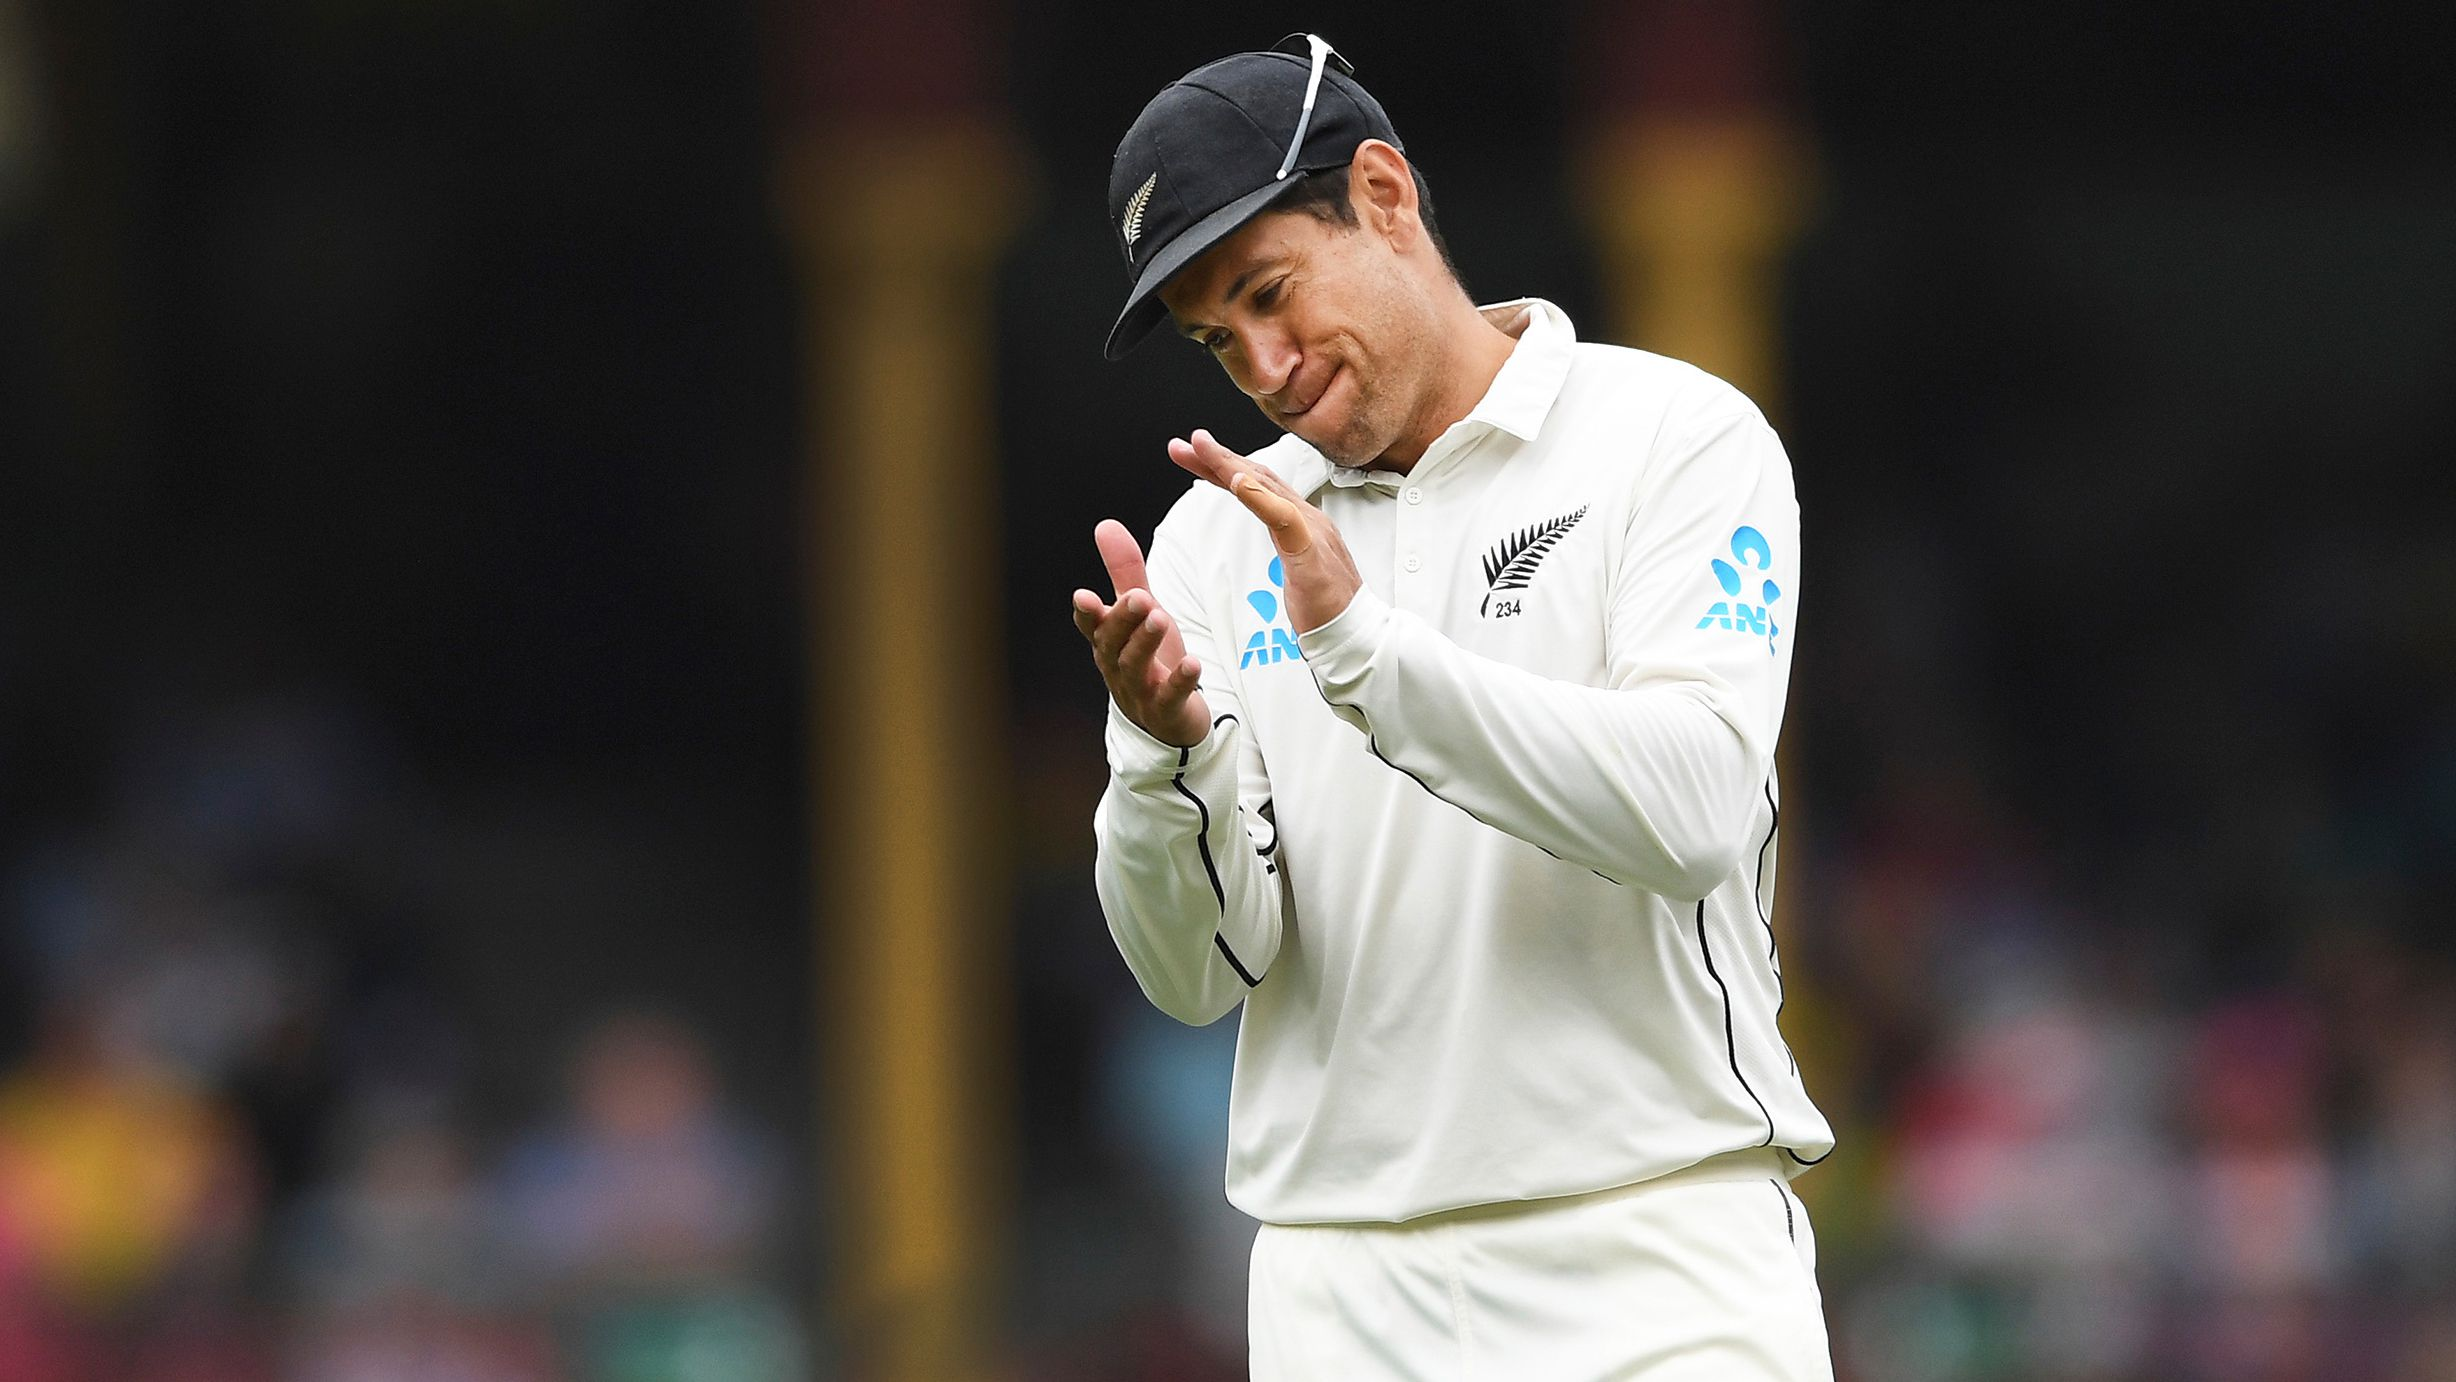 Memory of late mentor makes history bittersweet for Ross Taylor